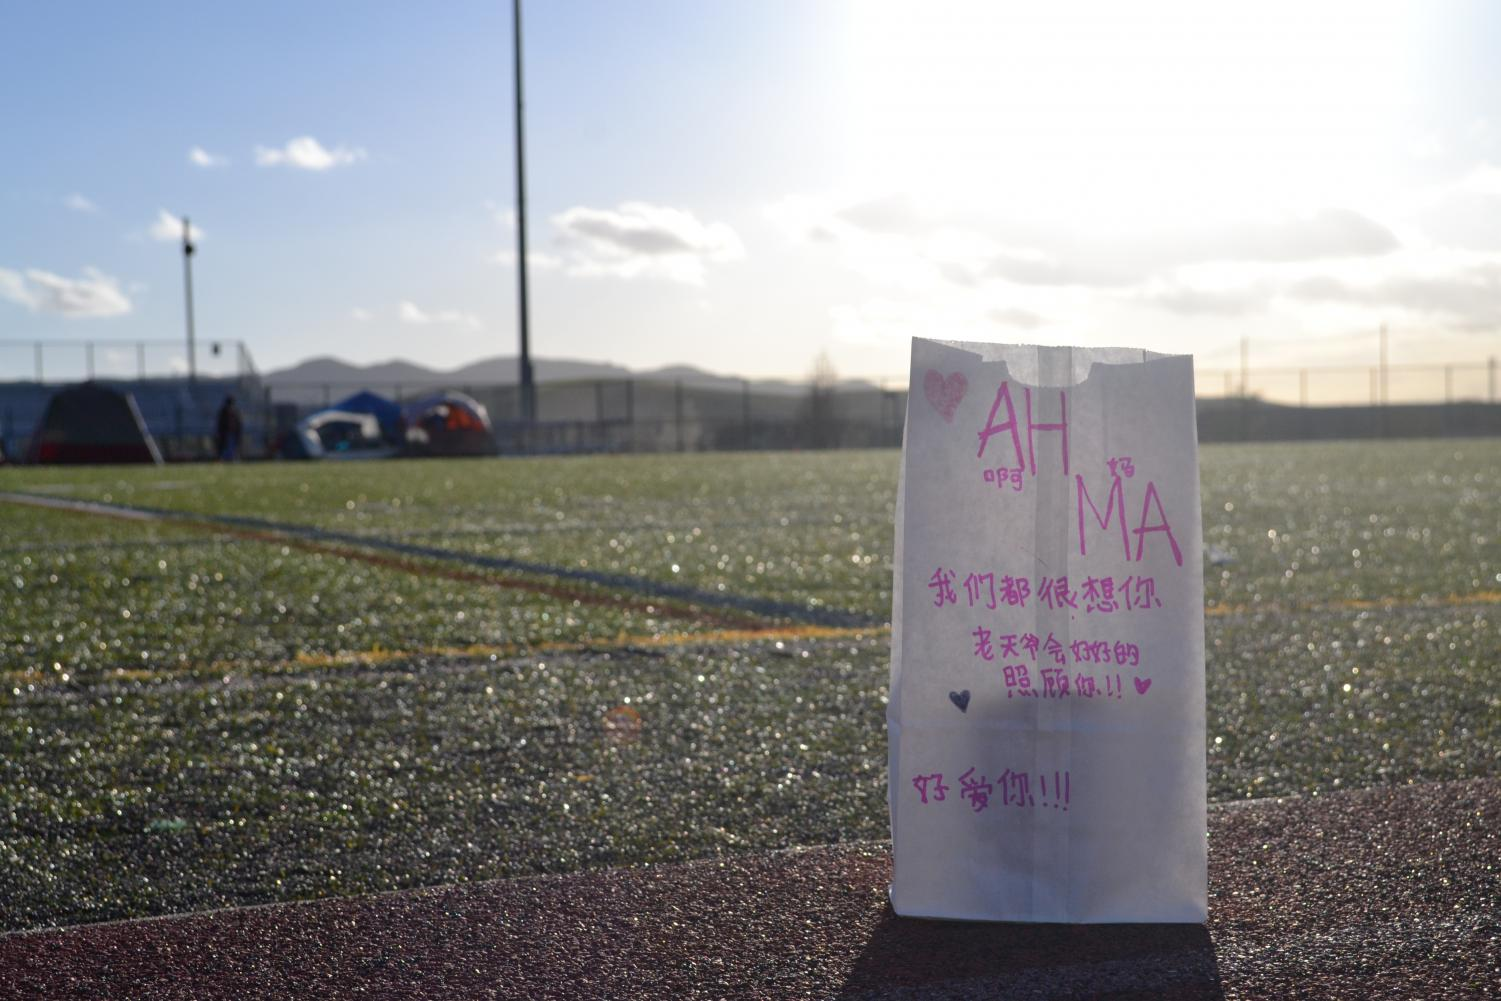 "Among the Luminarias lining the field, a particular one is written in the recipient's native language of Chinese. ""Mom / We miss you so much / God will take good care of you! / We love you!"" reads the pink text."